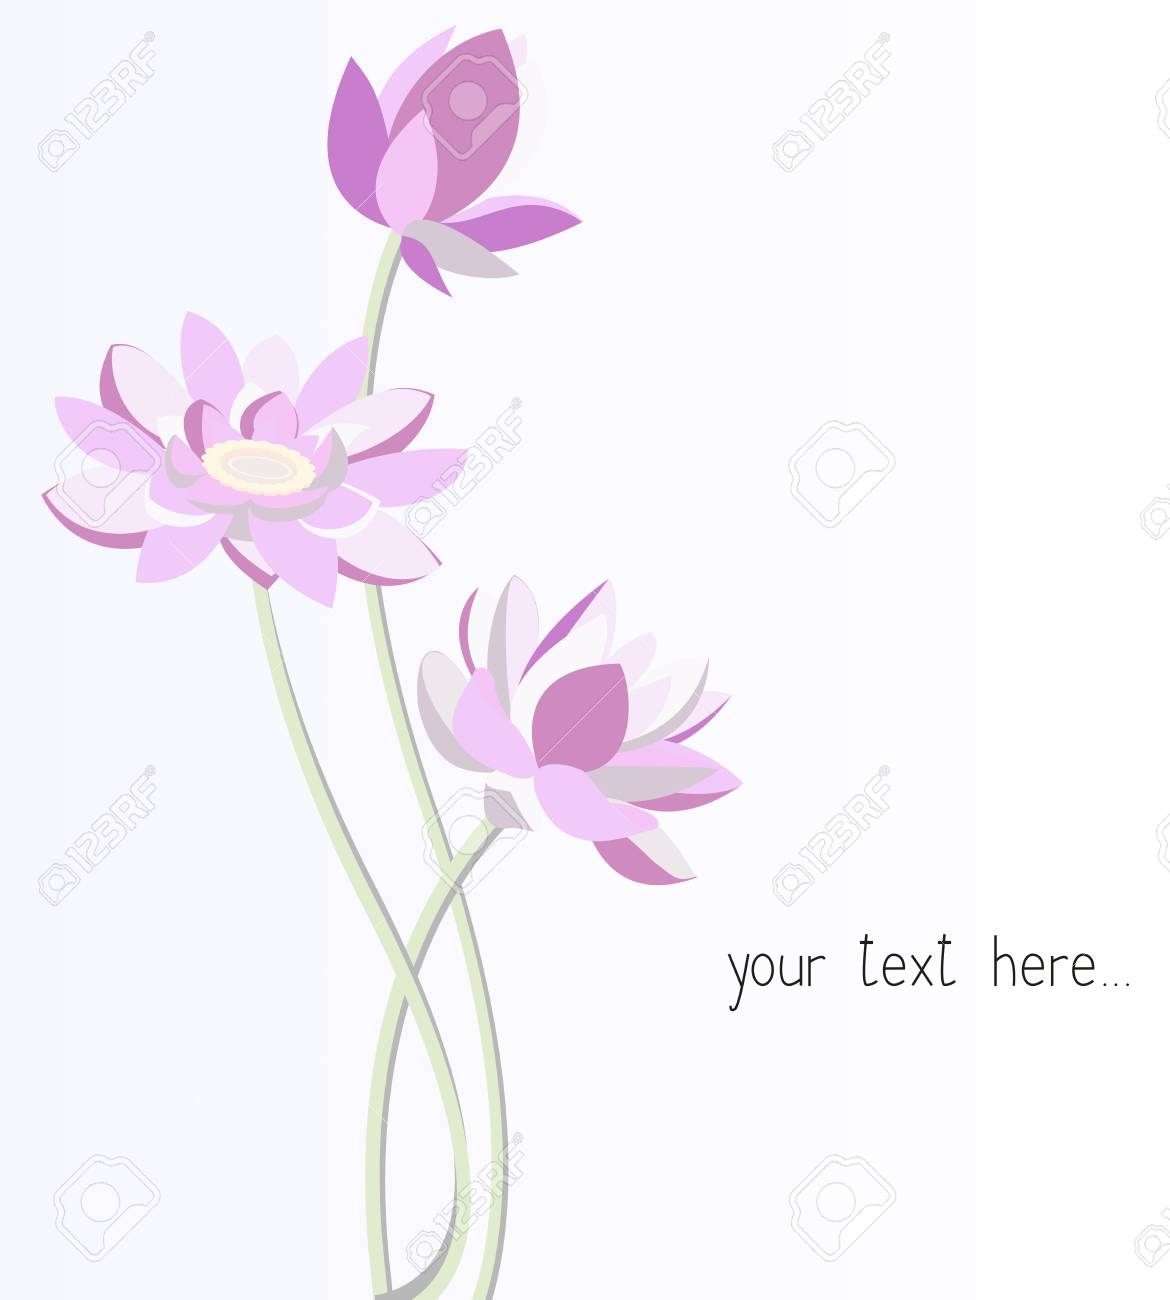 Lotus Flowers Graphic Modern Illustration Stylish Design Stock